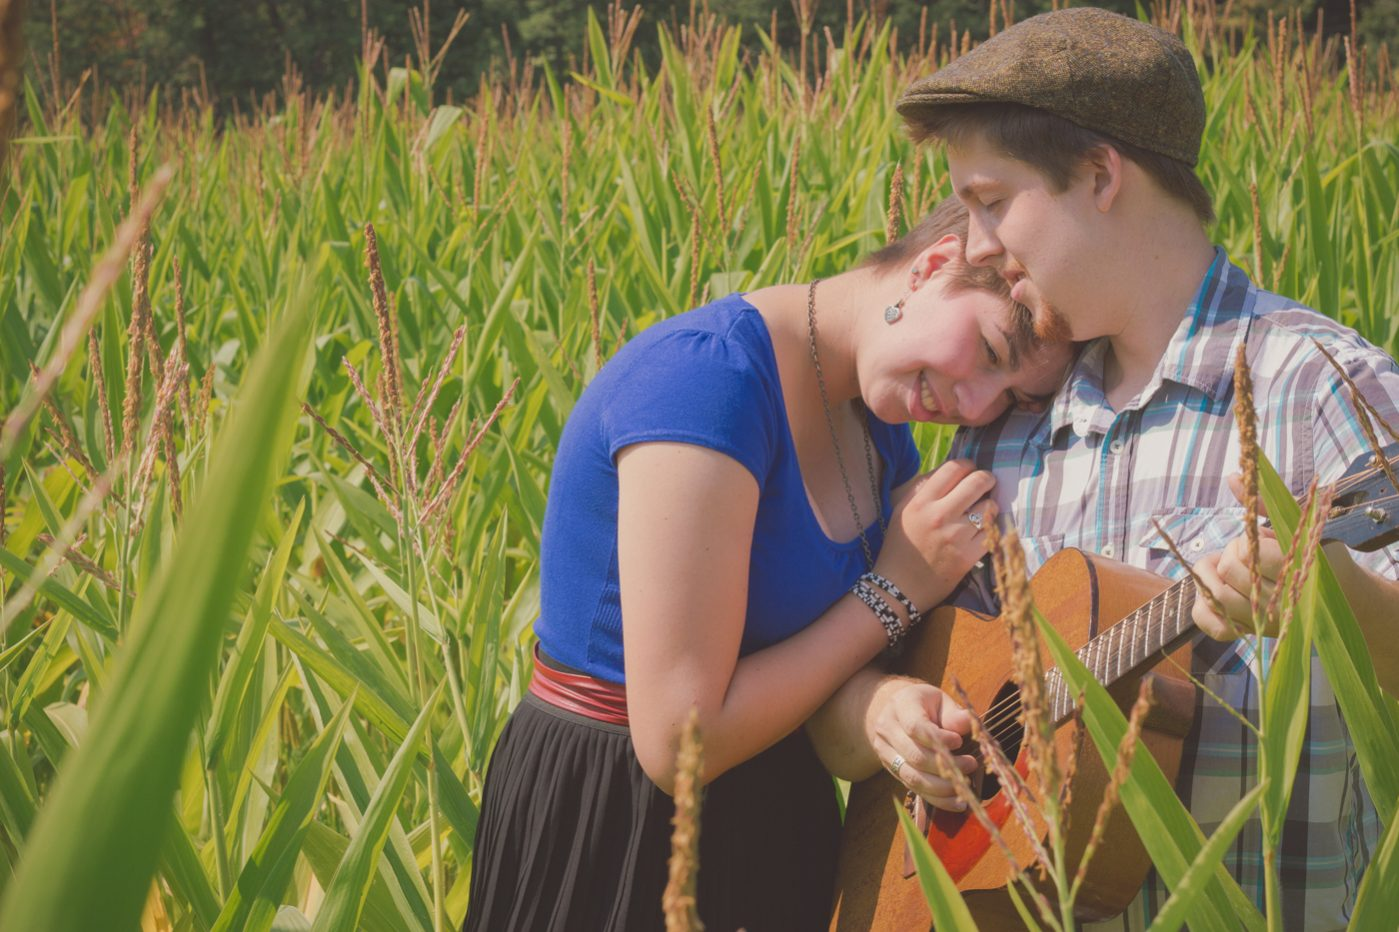 Couple playing guitar in a corn field.